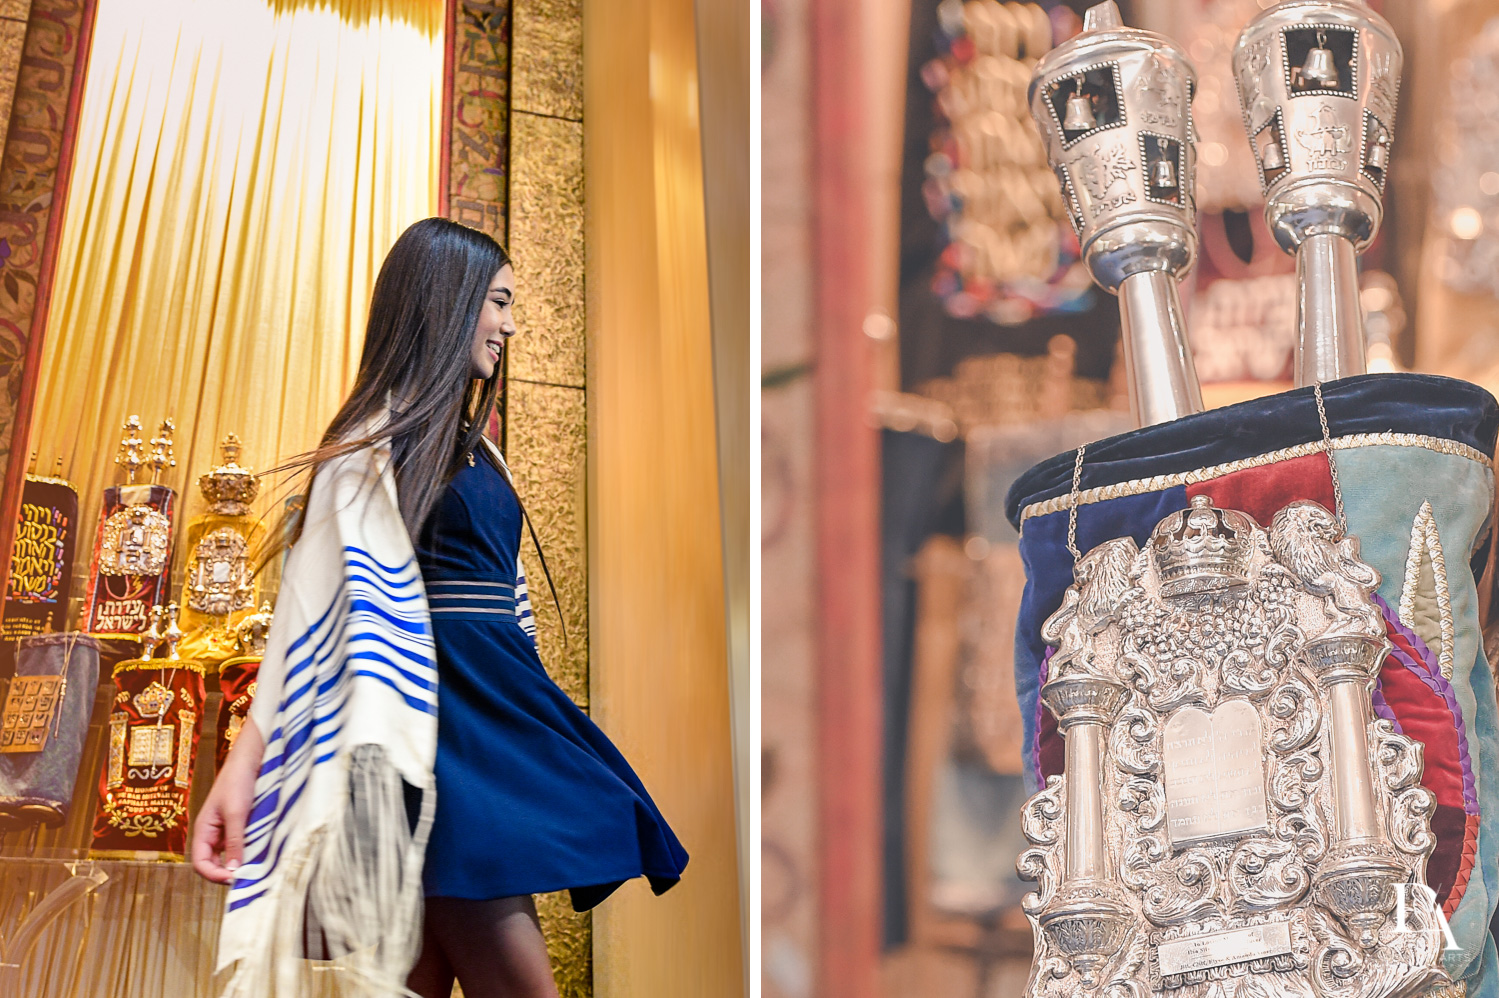 Fun pictures Mitzvah girl at Bnai Torah Boca Raton South Florida by Domino Arts Photography